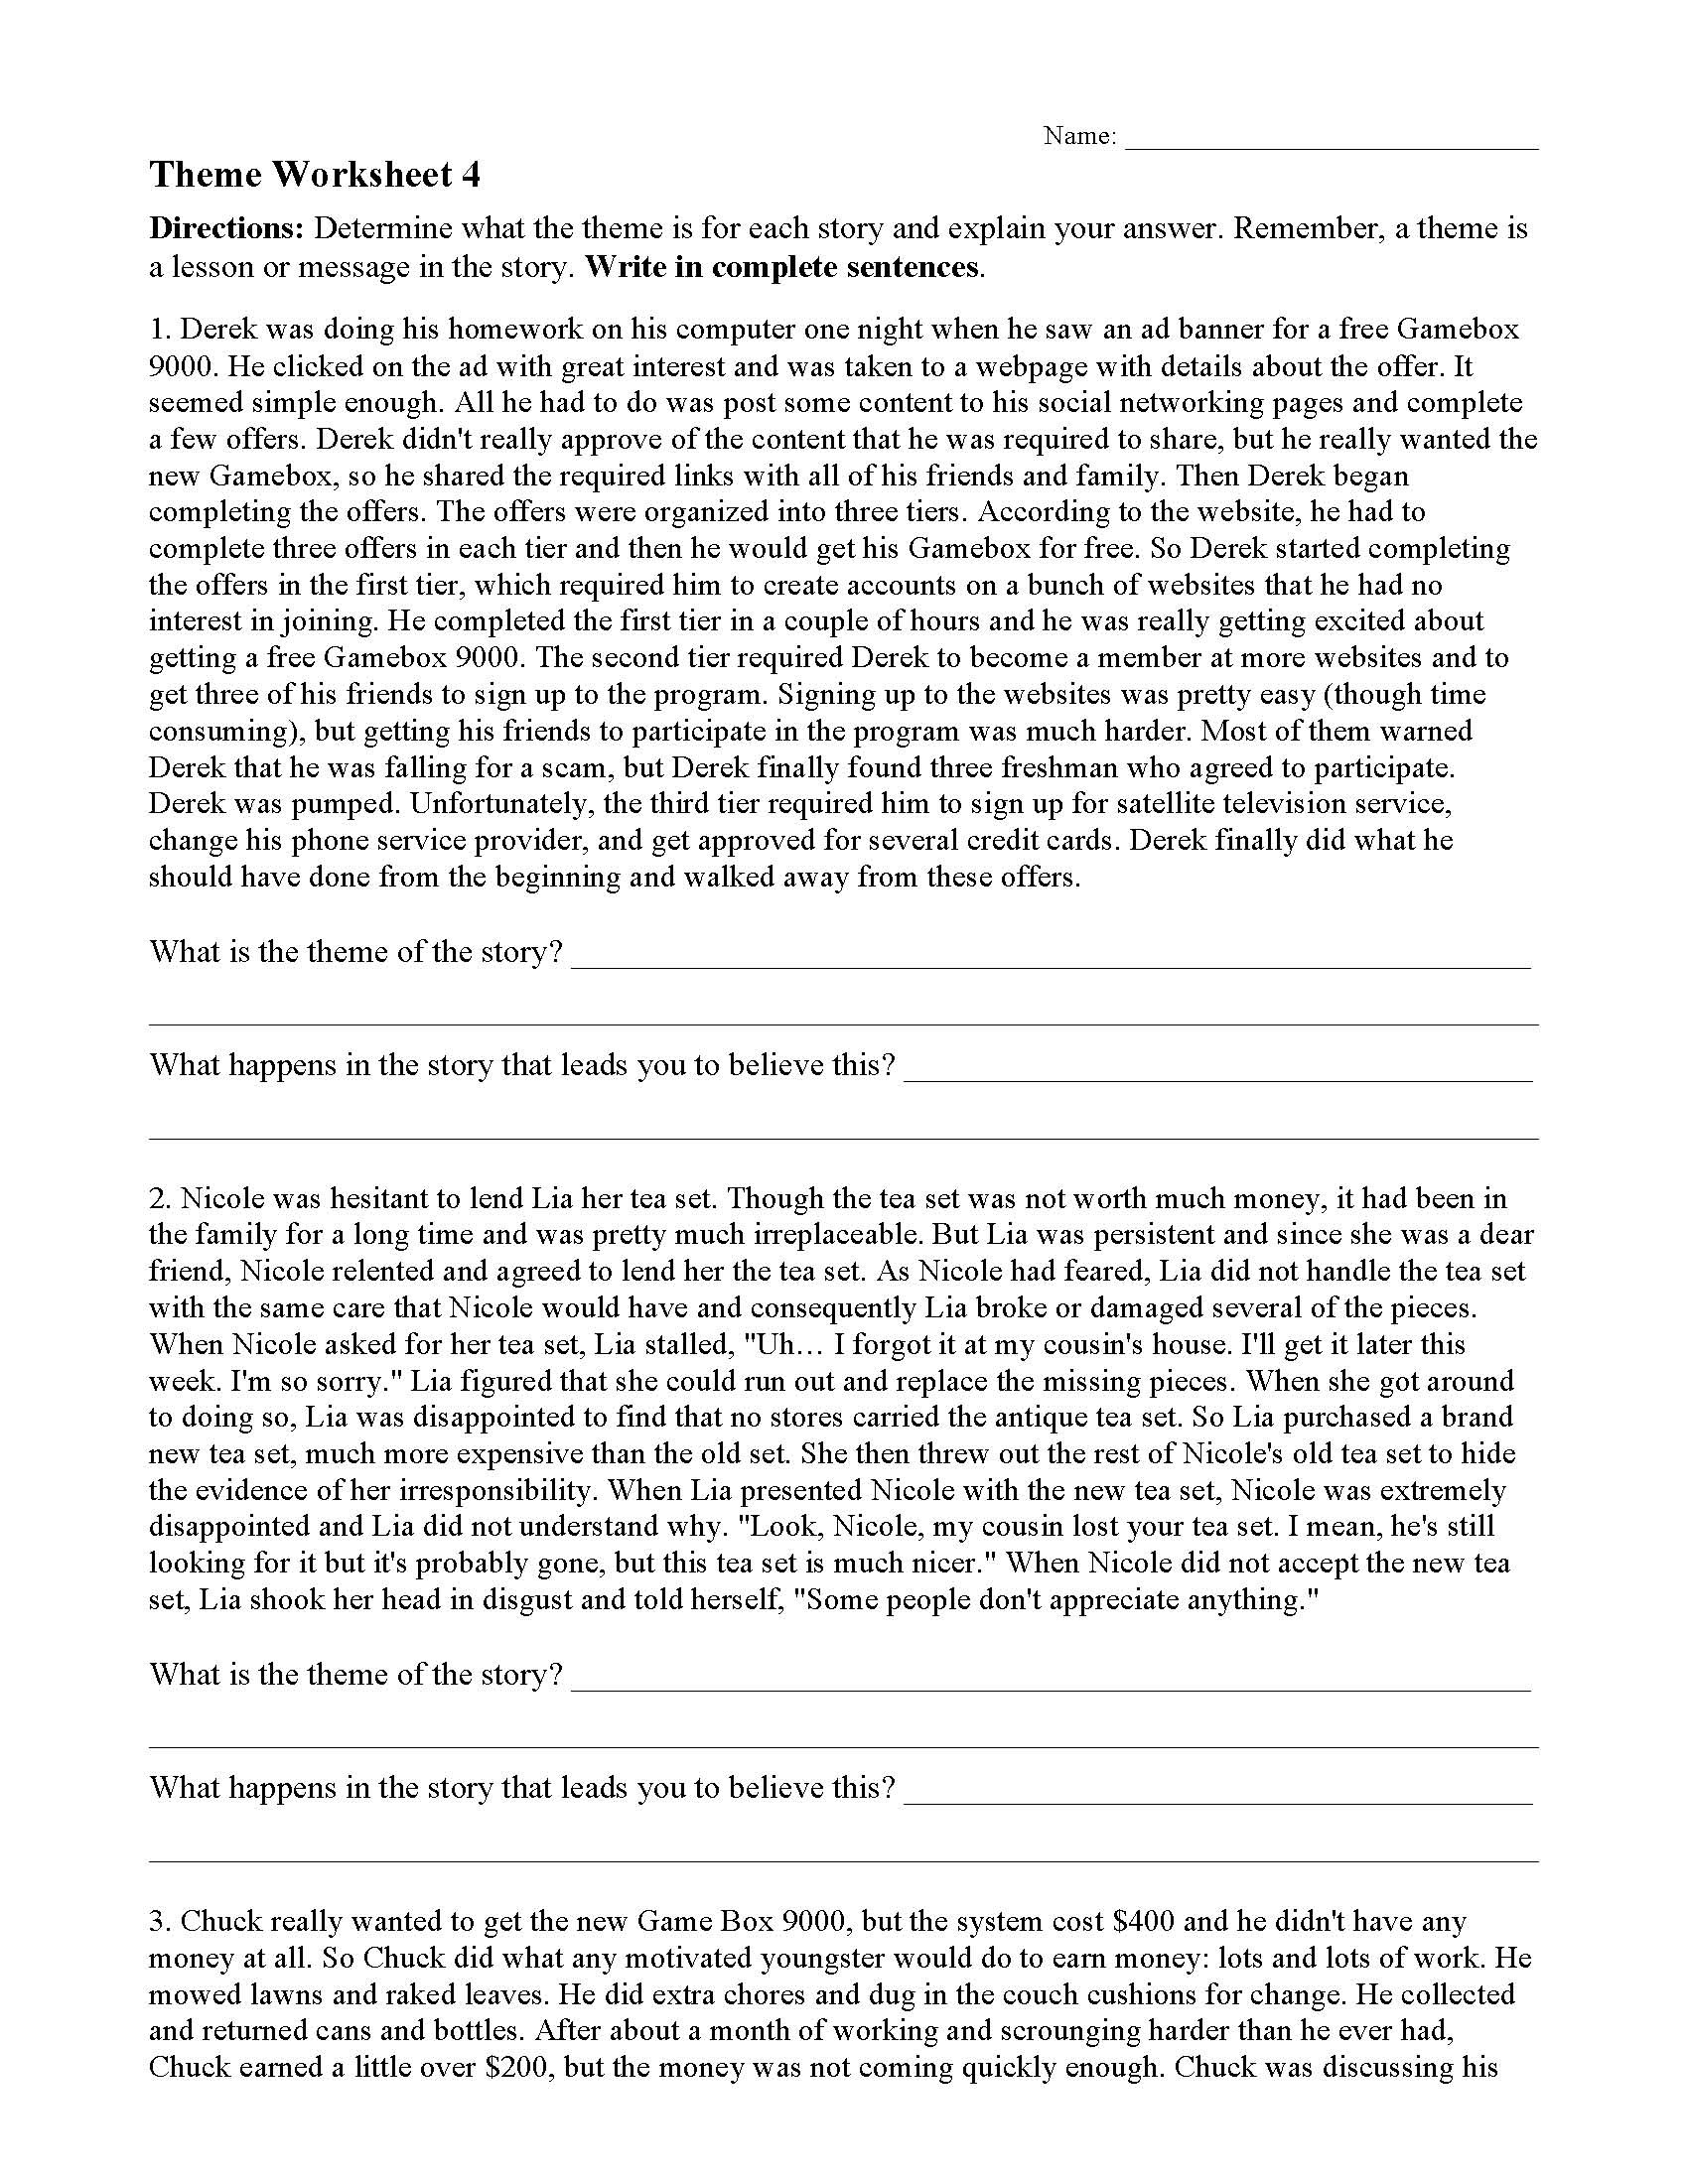 Theme Worksheet Grade 4 theme or Author S Message Worksheets